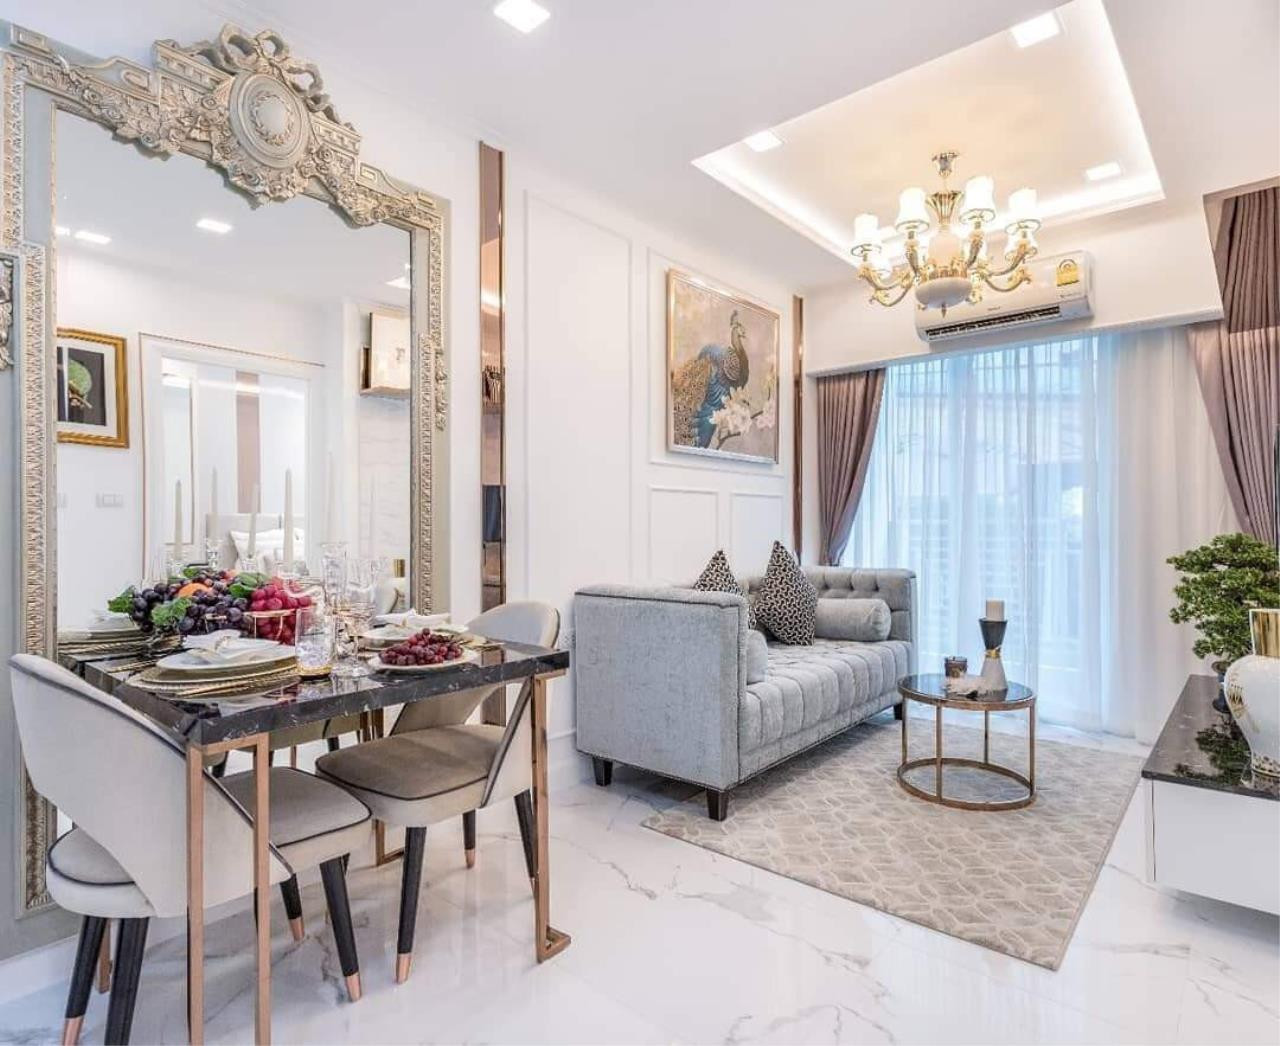 Pattayaconsult Co., Ltd. Agency's 33 sqm 1 bedroom for sale 30% discount @ The Empire Jomtien 9